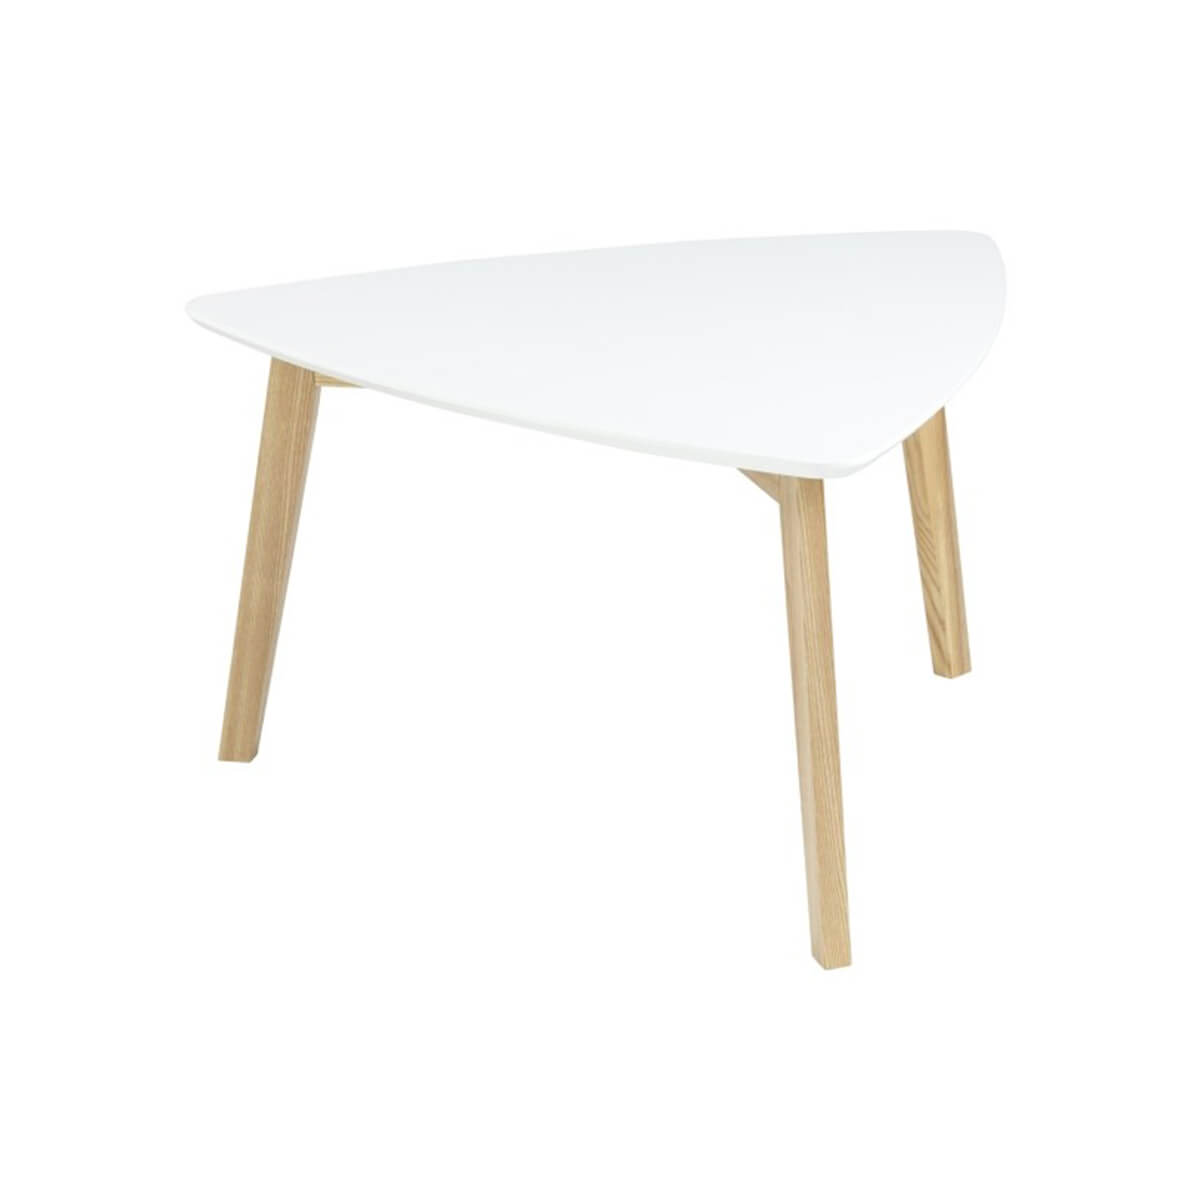 Triangle Coffee Table Wood.Vitis White Triangular Coffee Table Solid Ash Legs